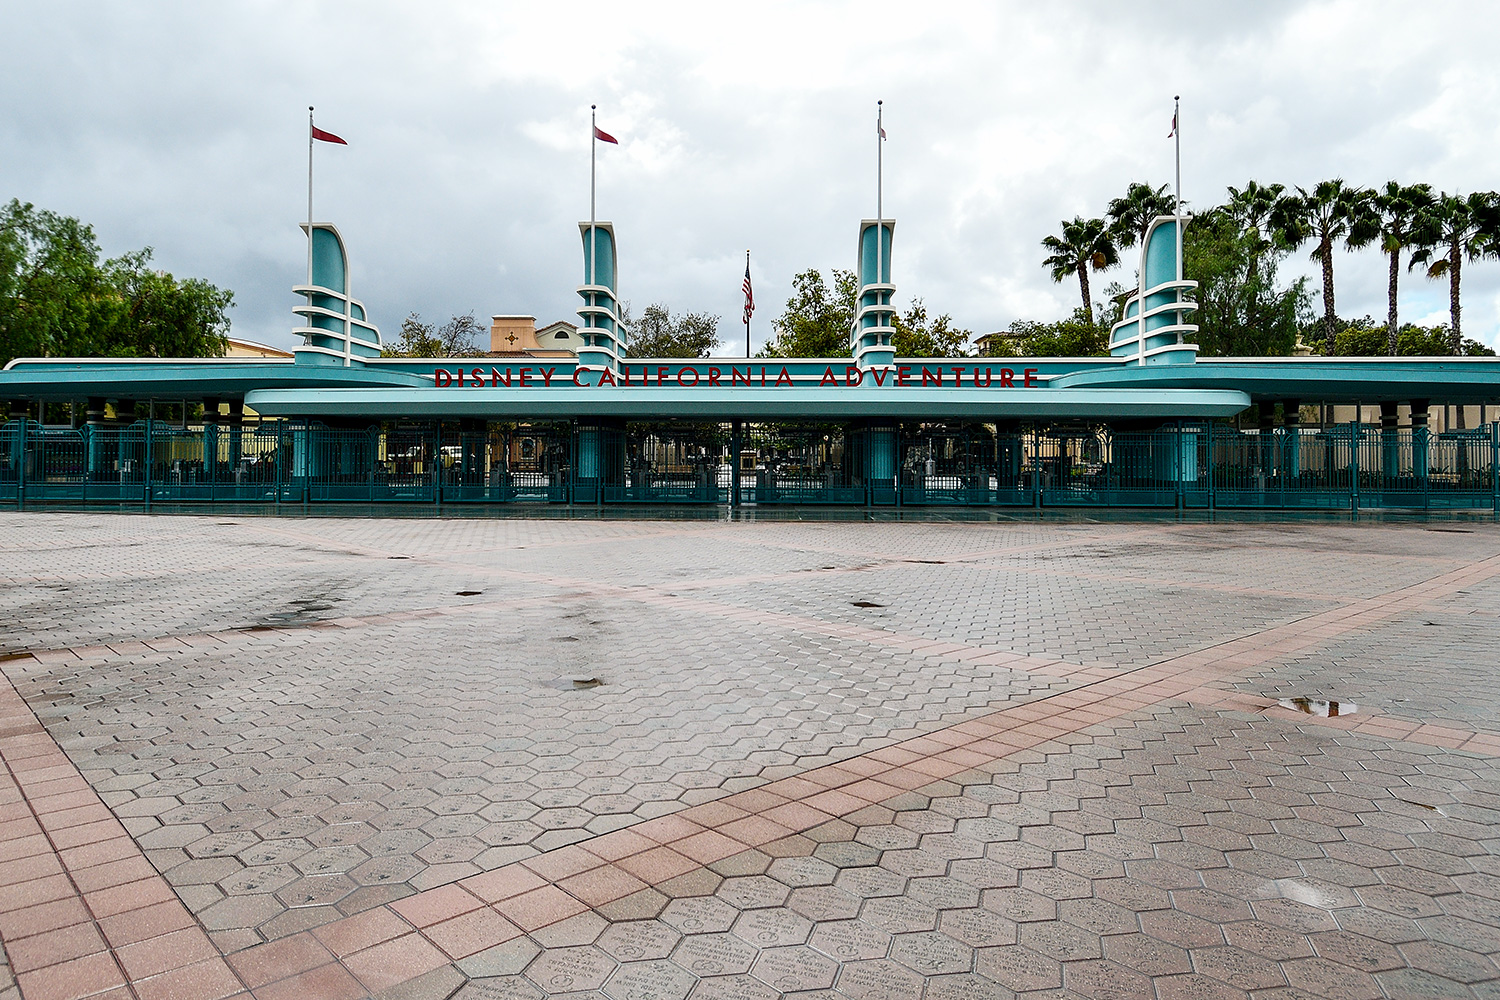 The entrance to Disney California Adventure is deserted as the entire Disneyland Resort shuts down due to the coronavirus (COVID-19) outbreak in Anaheim, CA, on Monday, Mar 16, 2020